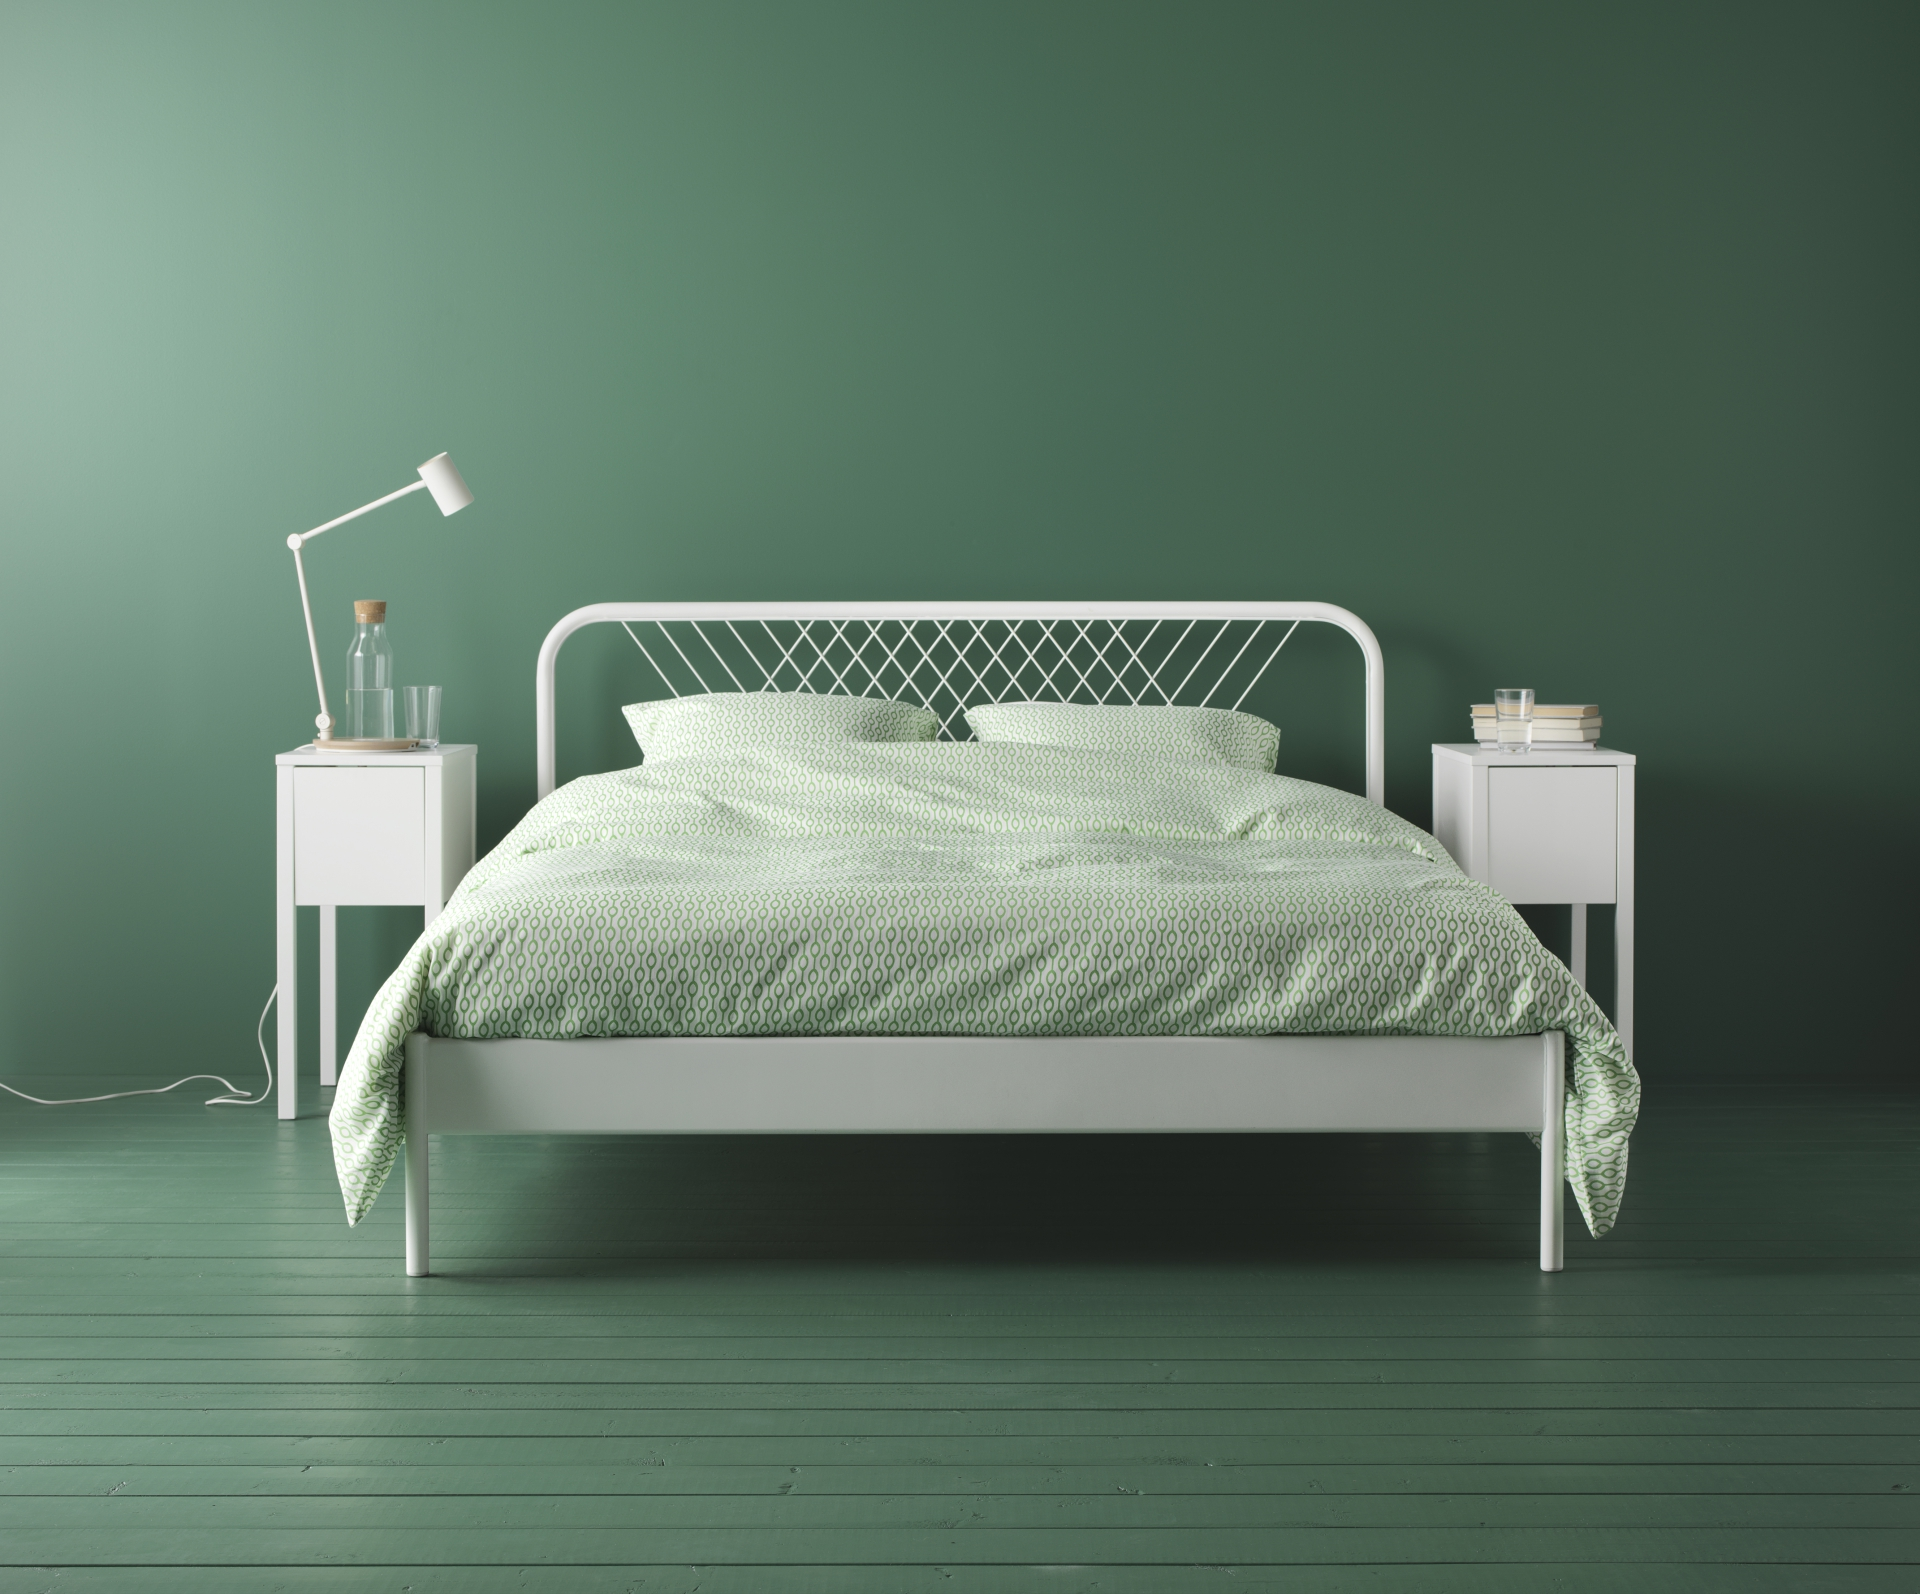 ikea nesttun bed frame review ikea bedroom product reviews